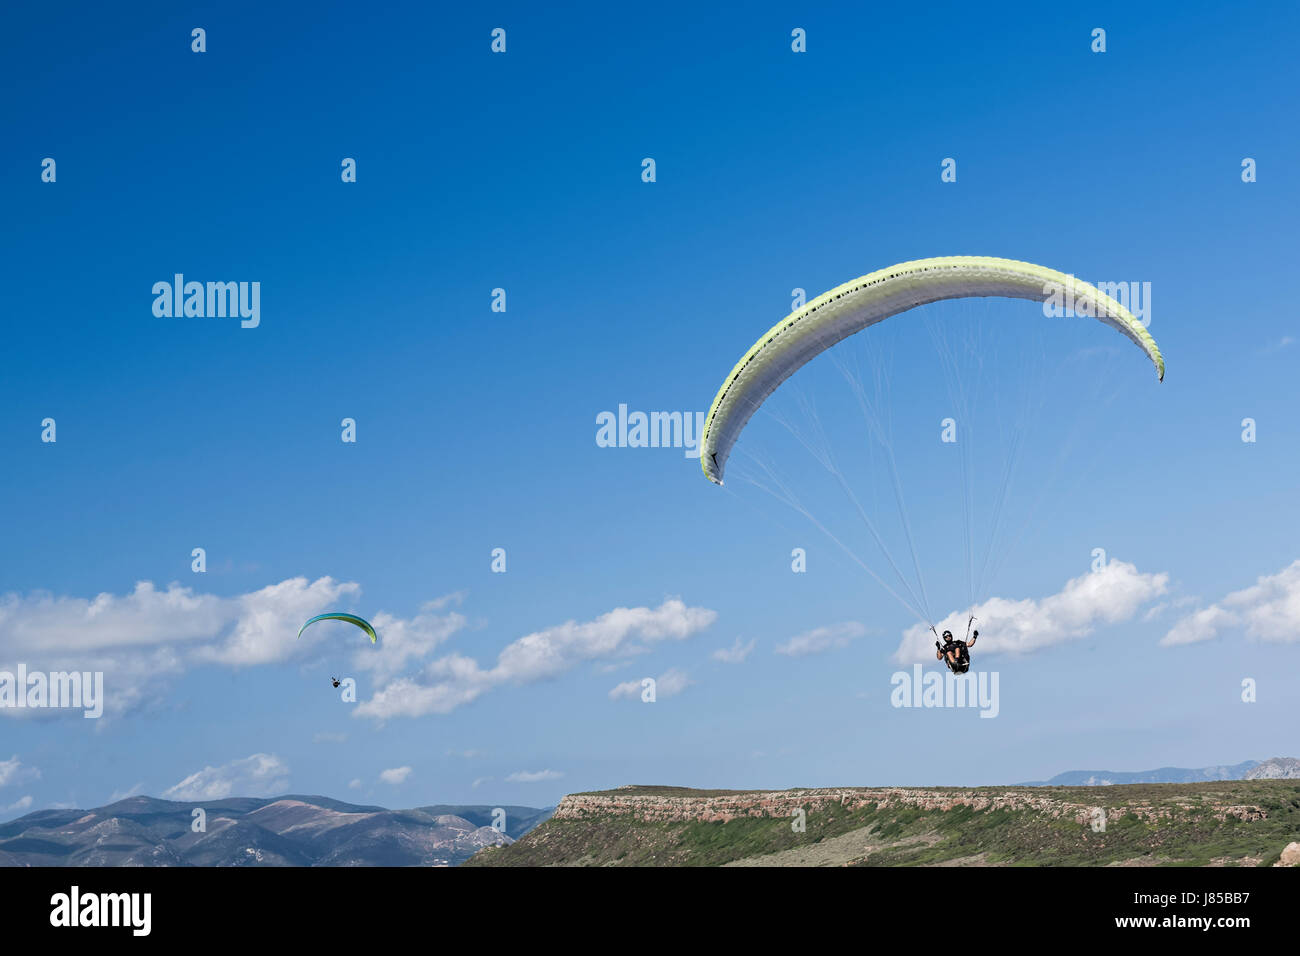 Colorful hang glider in sky over blue - Stock Image